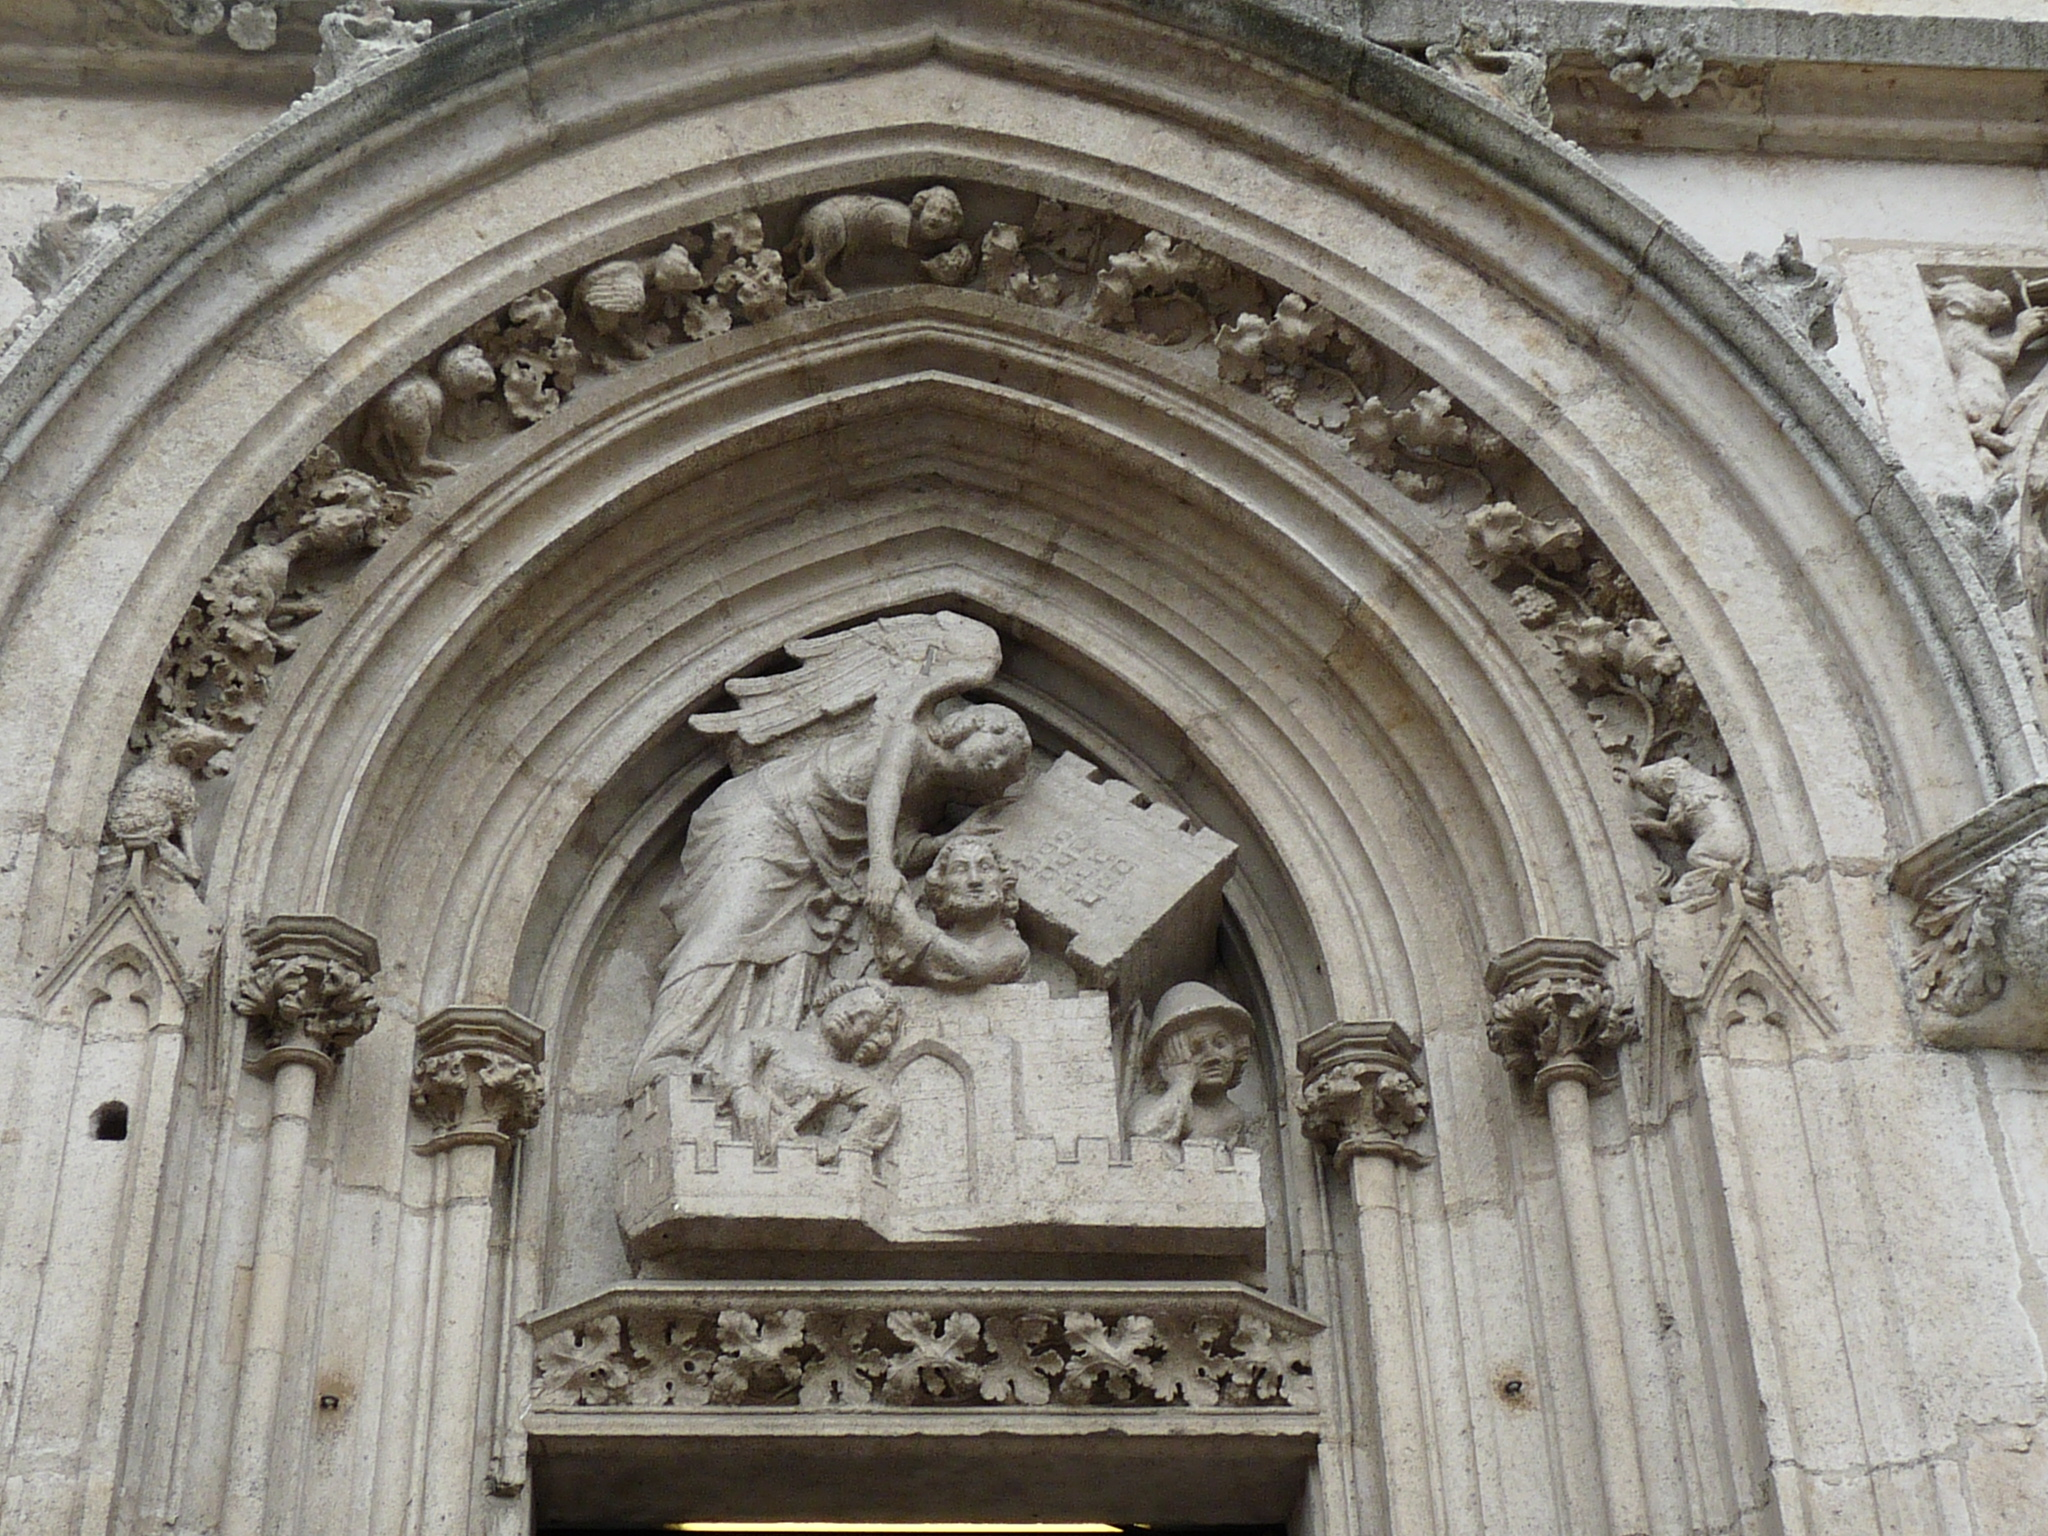 https://upload.wikimedia.org/wikipedia/commons/9/92/Westfassade_Detail_04.JPG